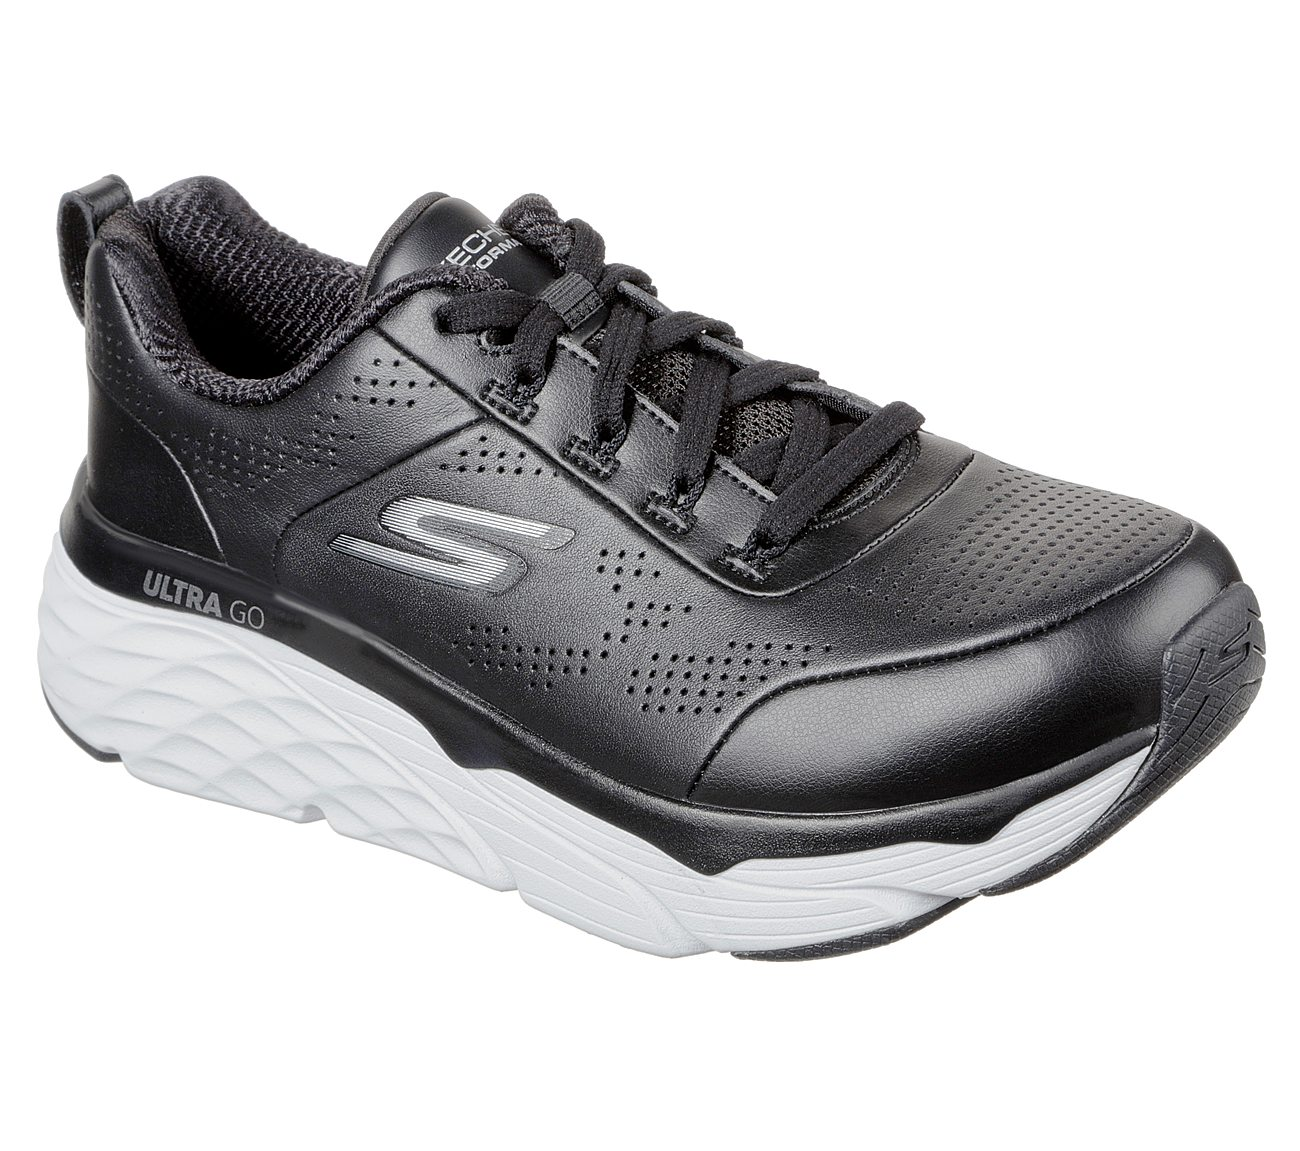 skechers step up shoes